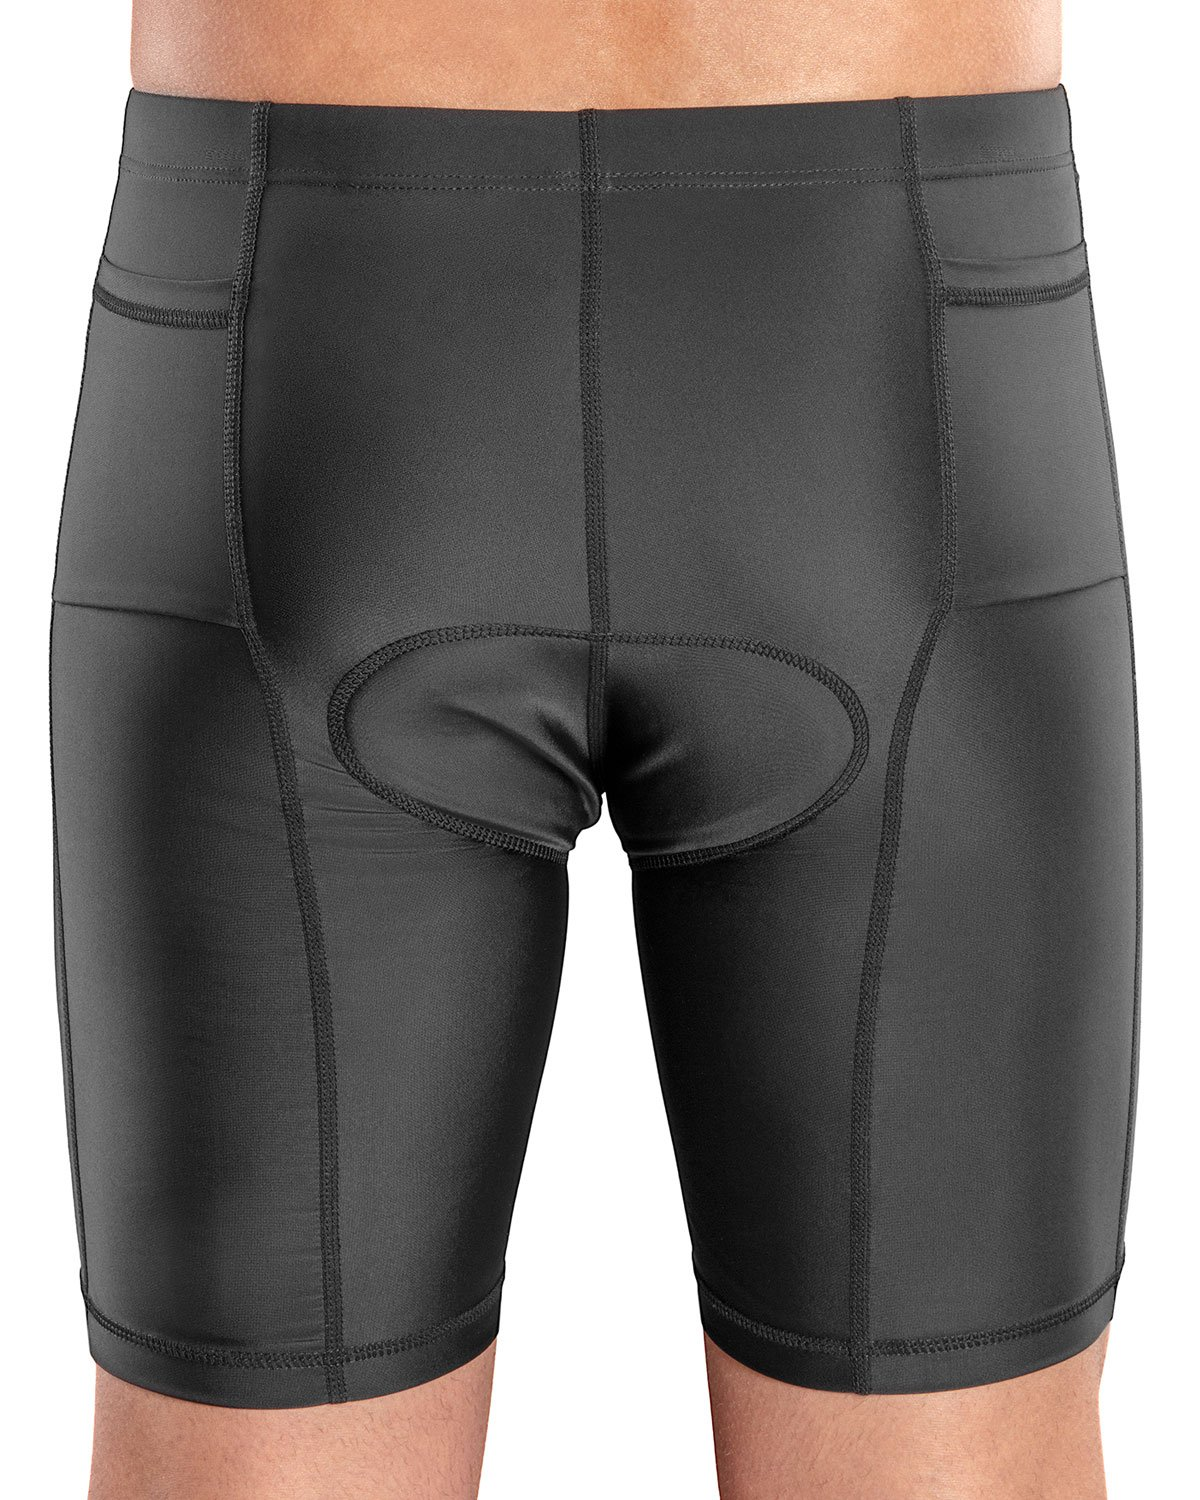 SLS3 Men`s Triathlon Swim Shorts + Race Belt | 2 Pockets Triathalon Shorts | Bike Shorts Men Triathlon | FRT 2.0 | German Designed L by SLS3 (Image #6)